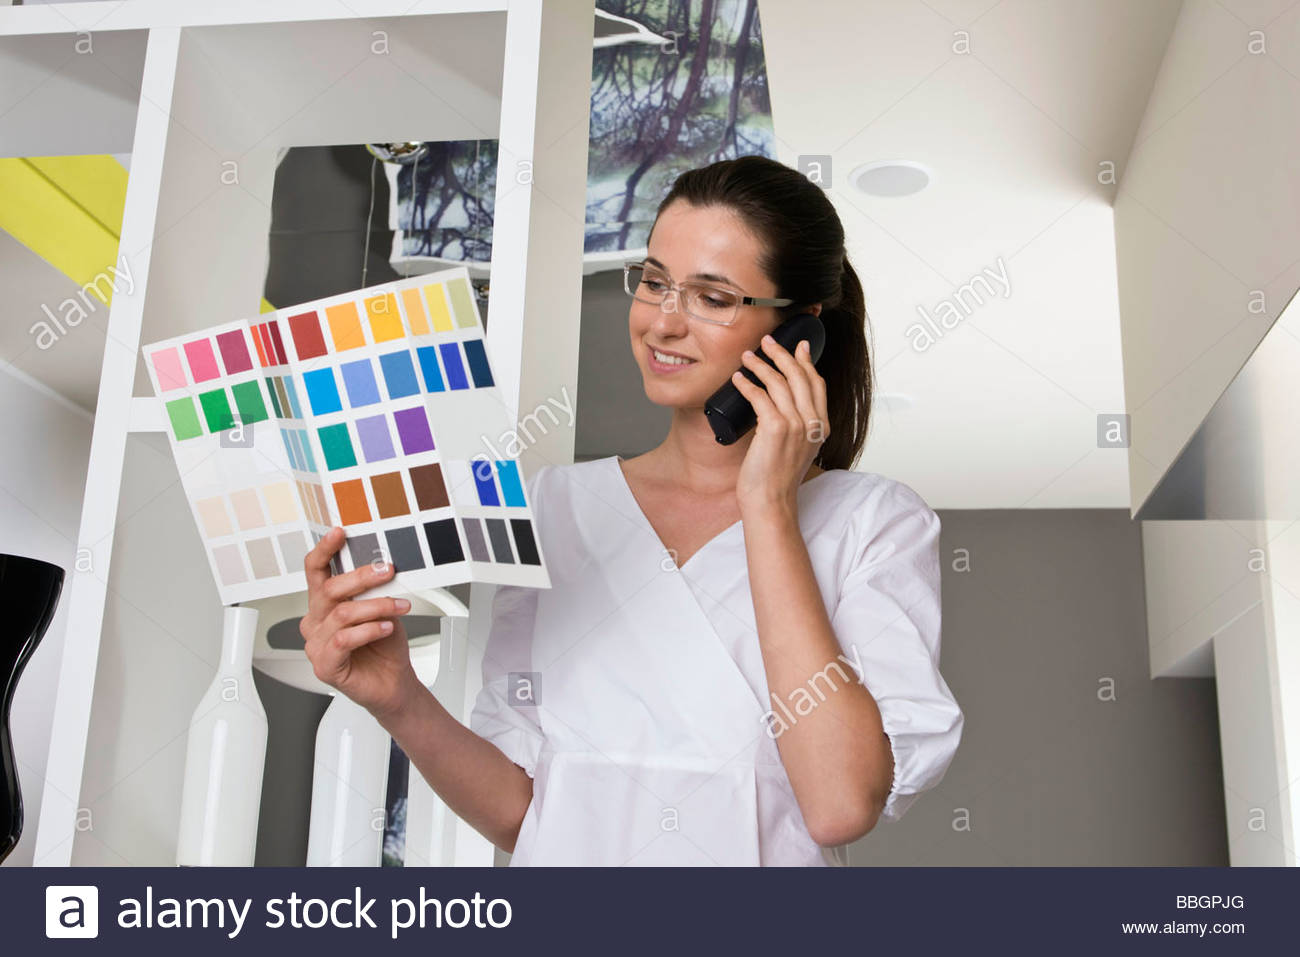 Young businesswoman on phone looking at color swatches - Stock Image